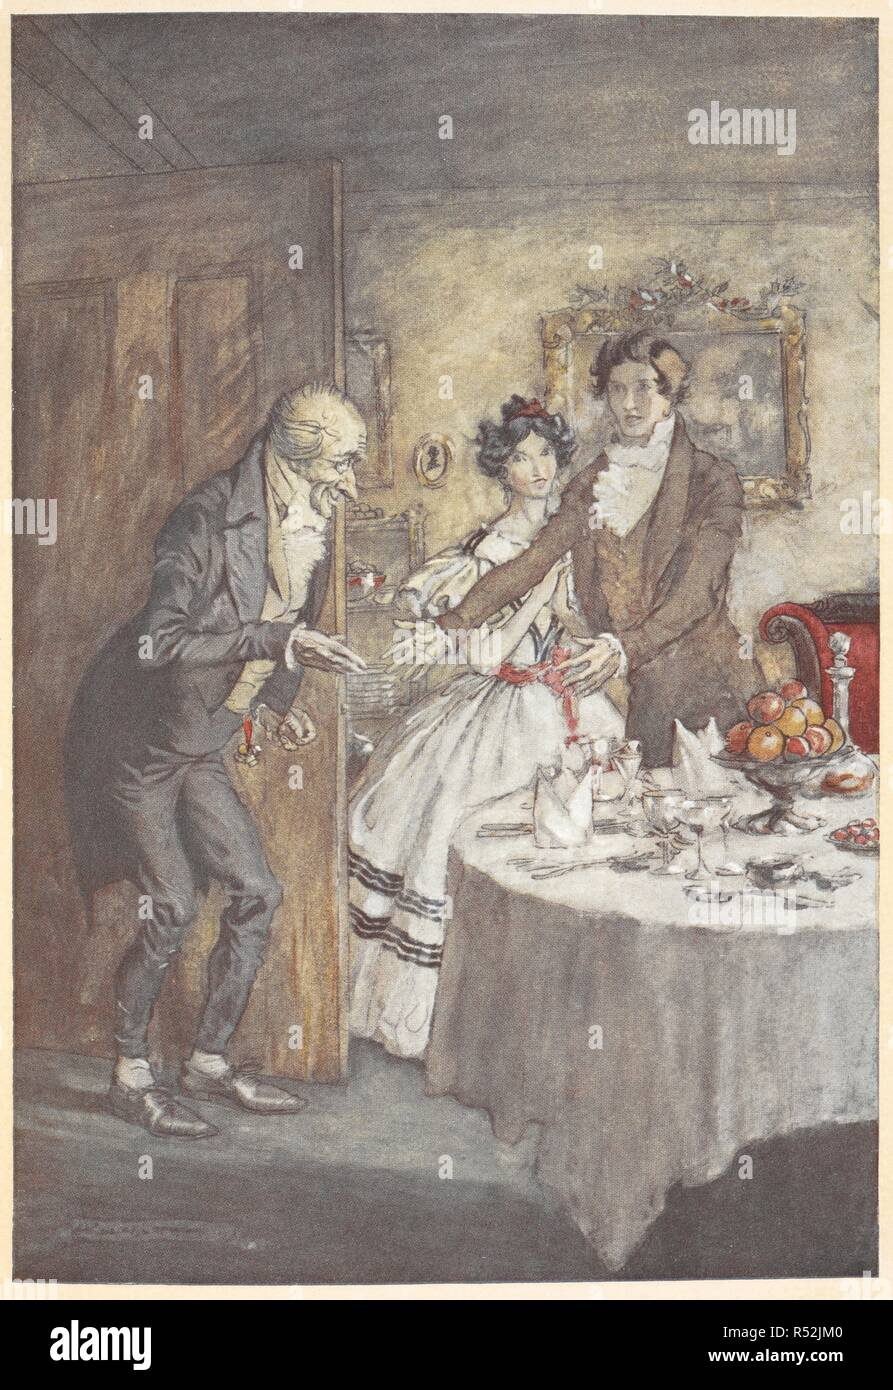 Uncle Scrooge Christmas Carol.A Young Man And Woman Welcoming Scrooge For A Meal In Their